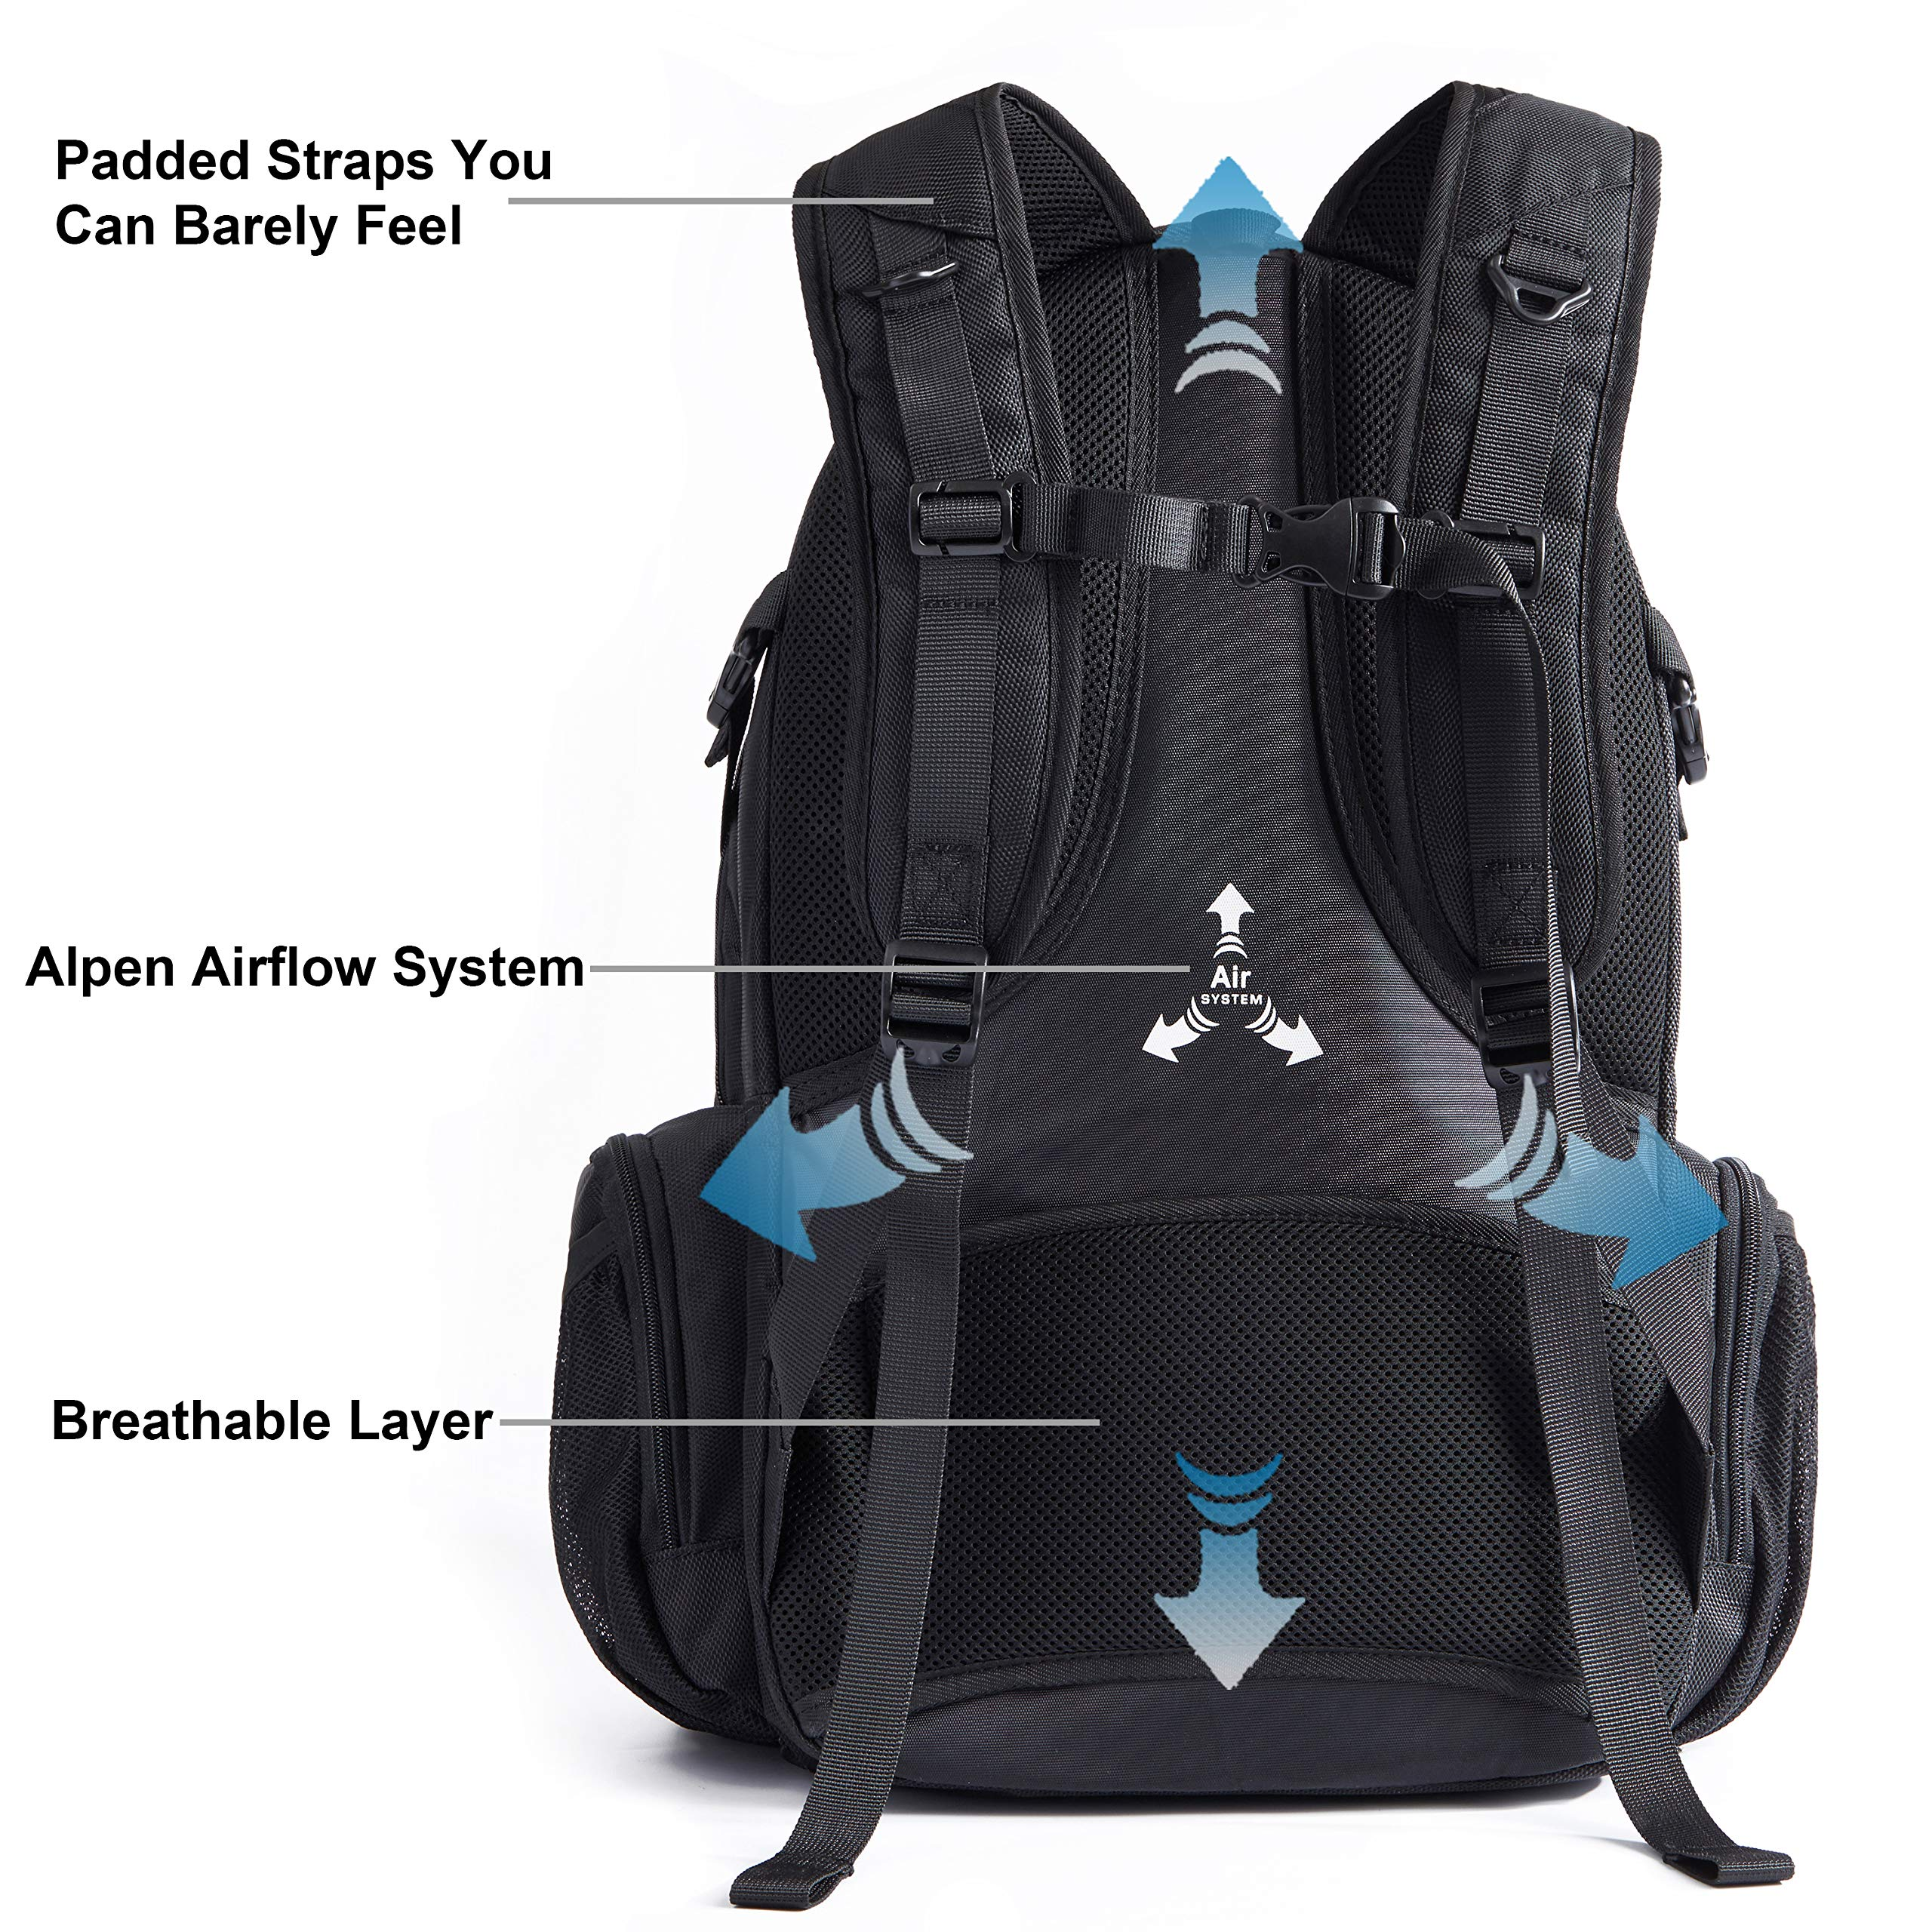 Swiss Alpen - Blanc Backpack - Water Resistant Durable 1680D Large Laptop Backpack for Travel, School & Business - Fits 15.6'' Laptop with USB Charging Port - Black Exclusive by Swiss Alpen (Image #6)